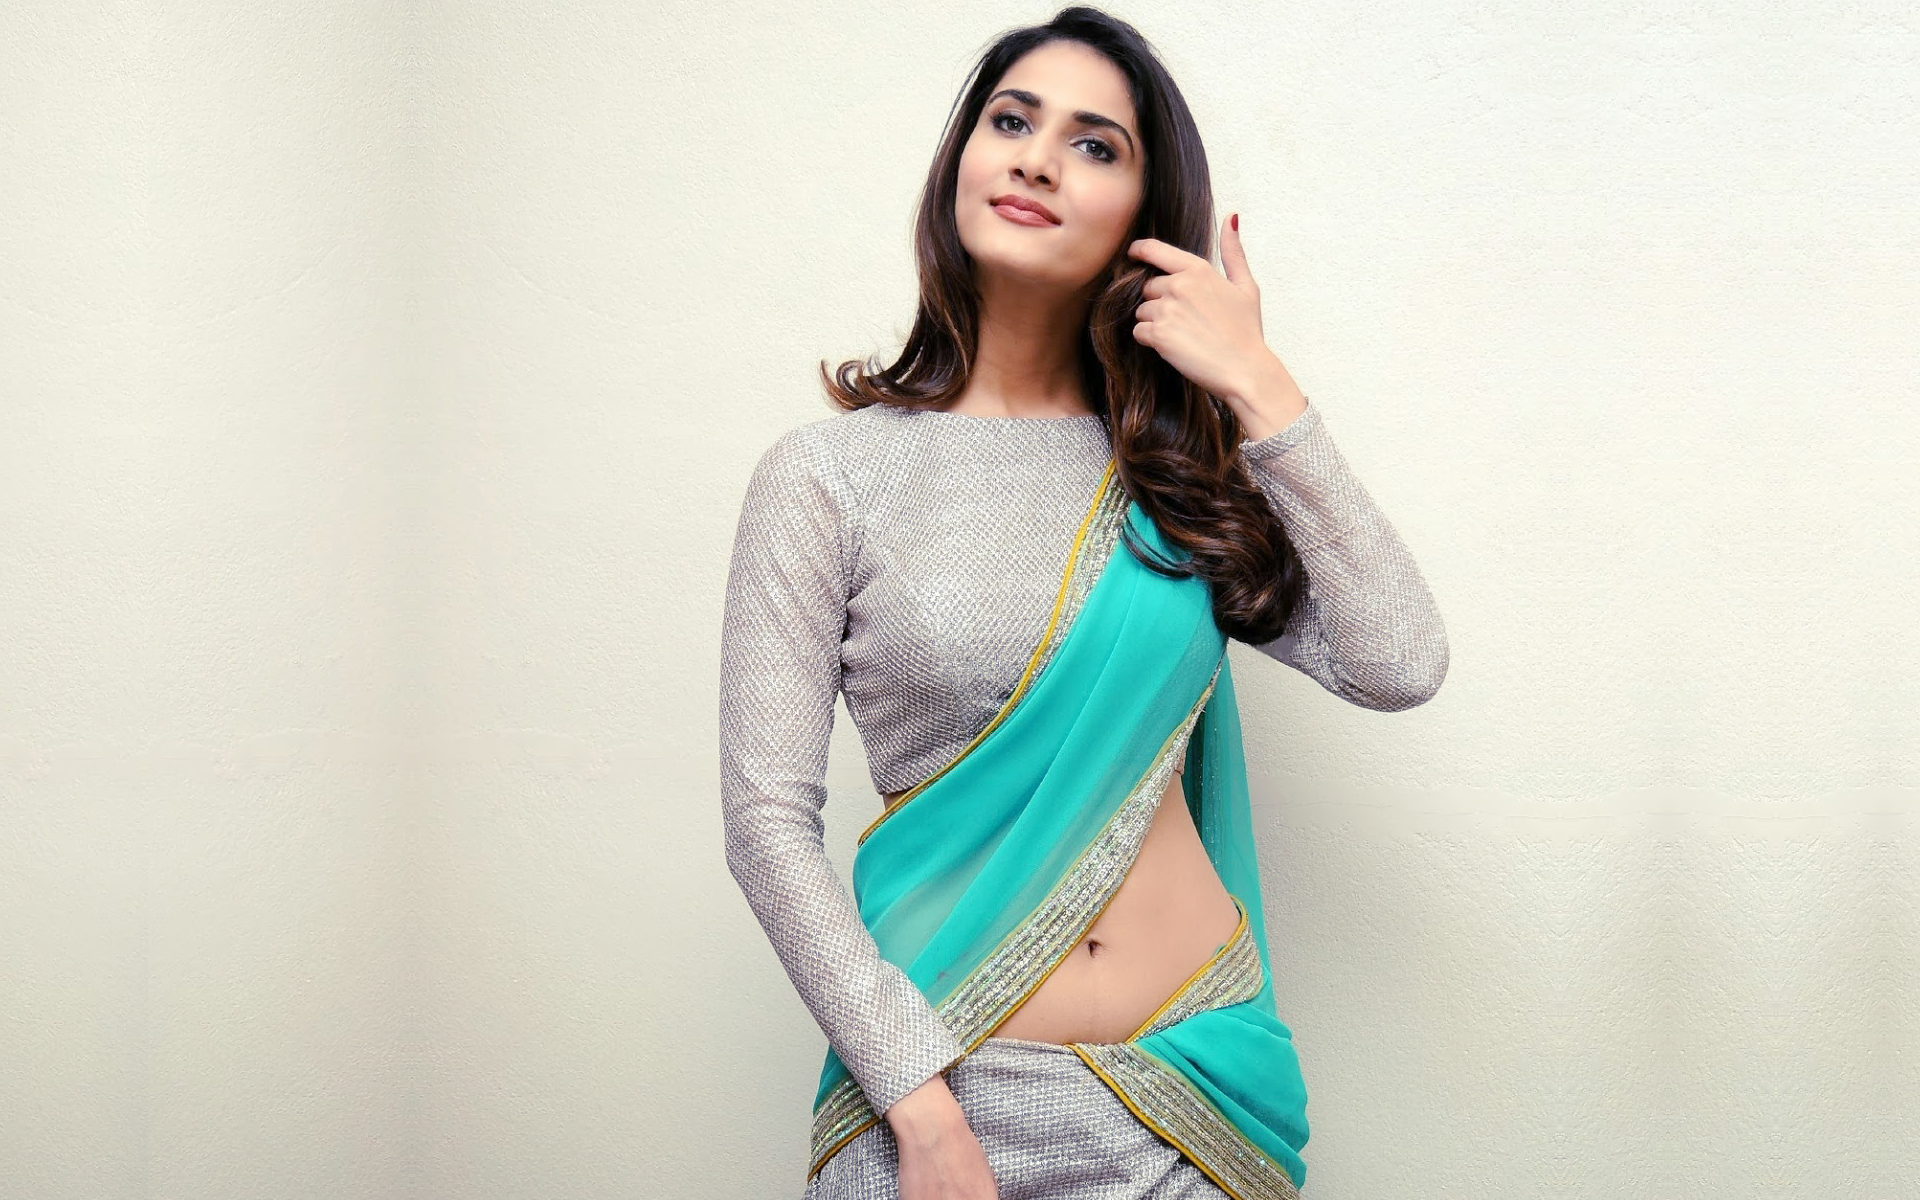 Vaani Kapoors outfit draws police complaint | Bollywood